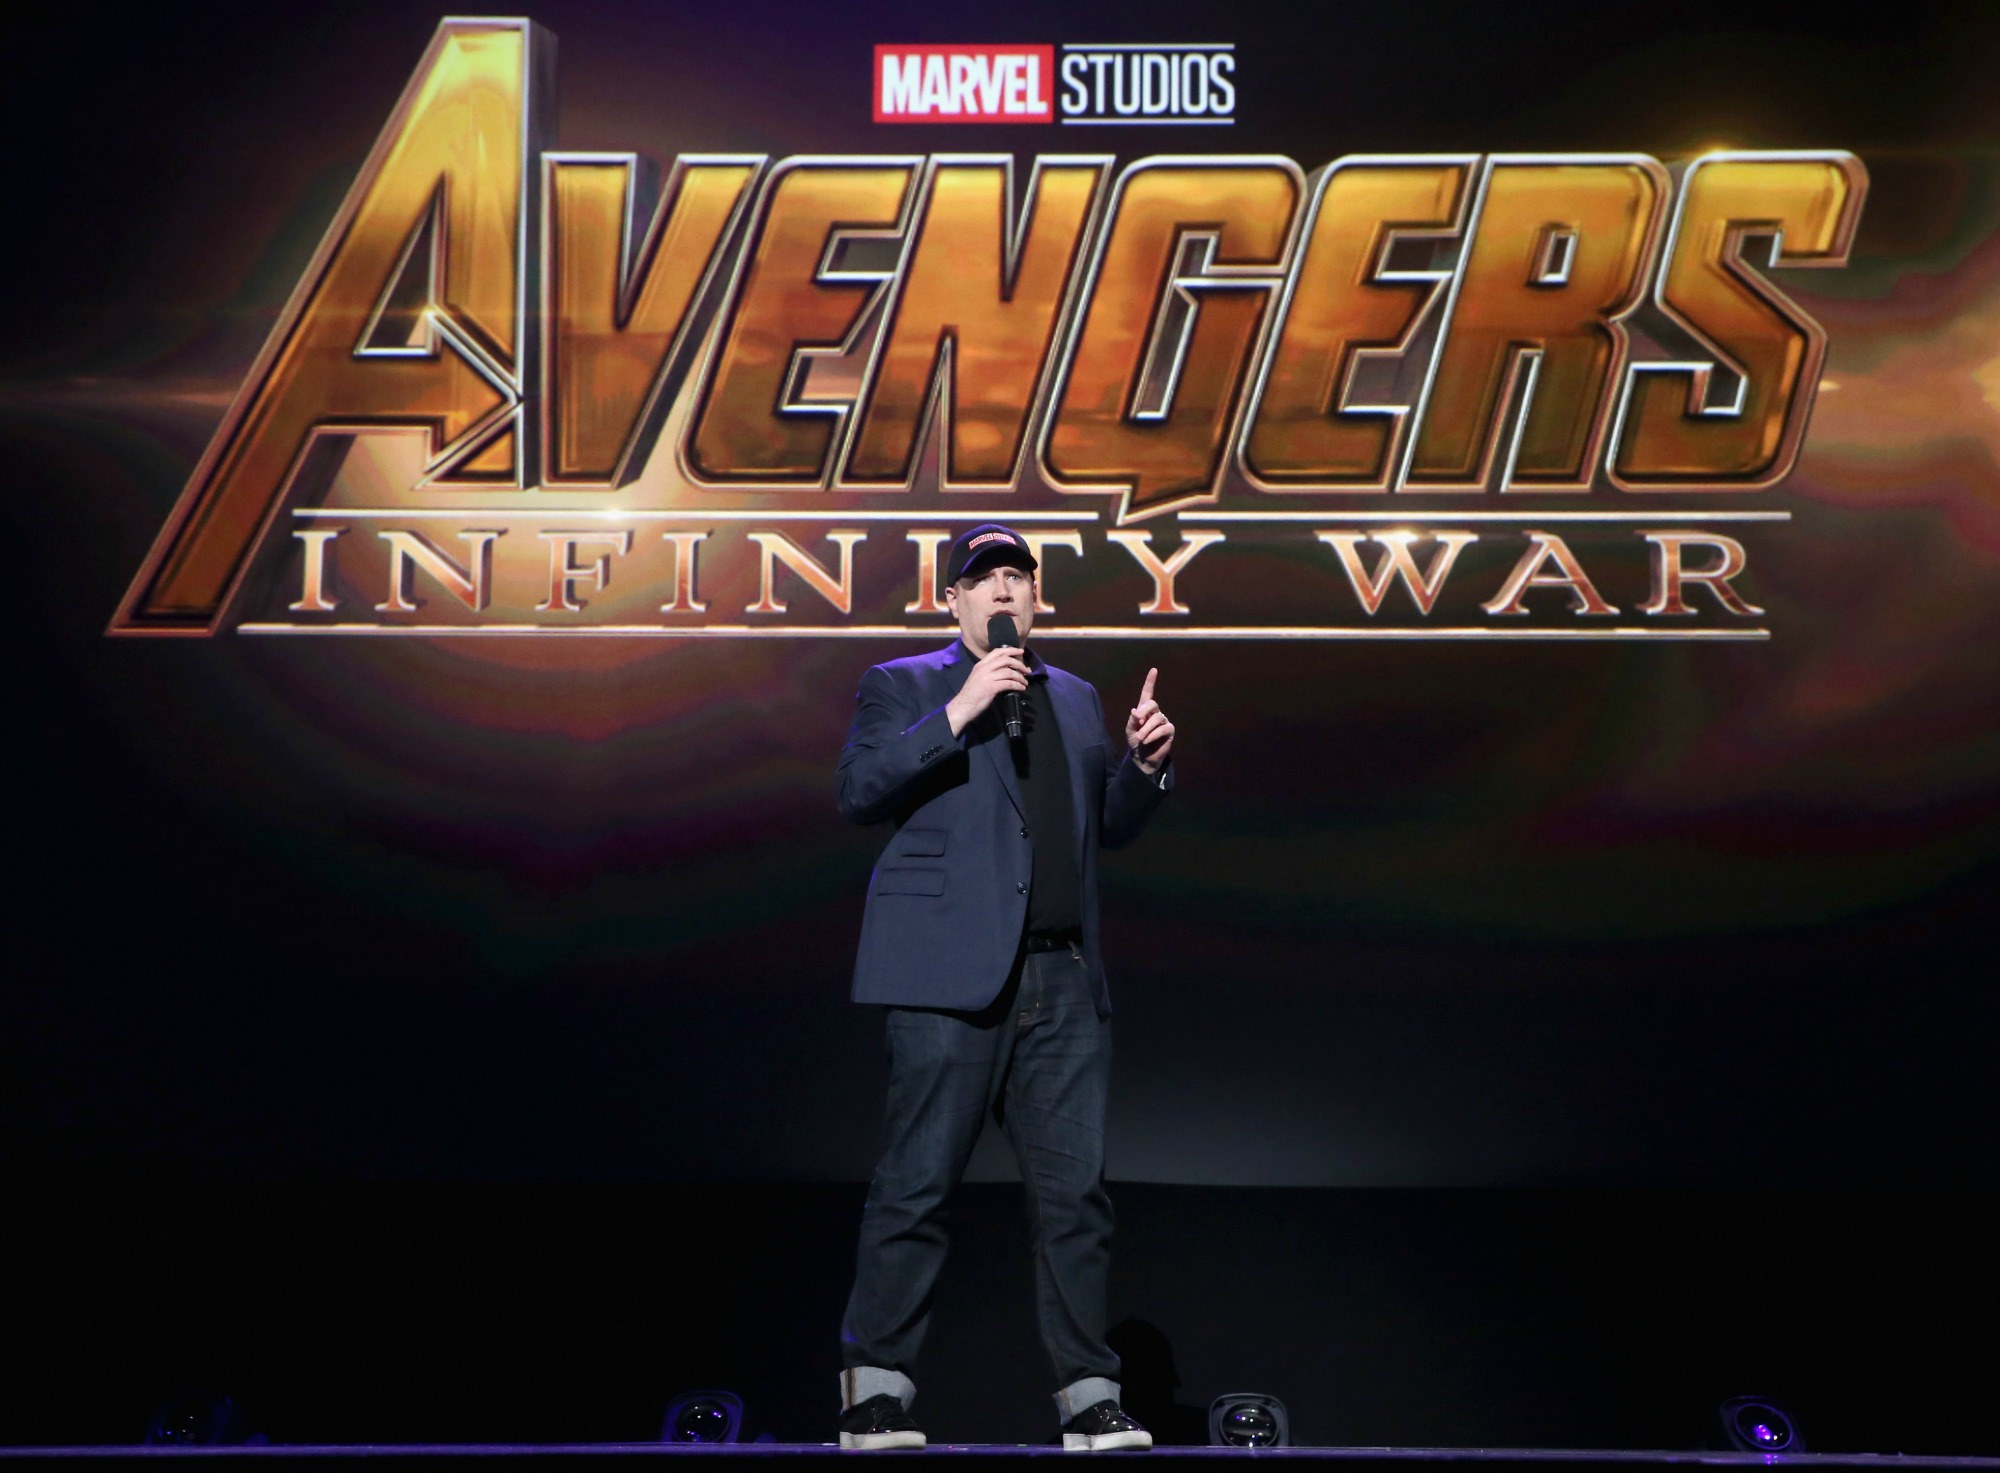 Everything you need to know about AVENGERS: INFINITY WAR (spoiler free)